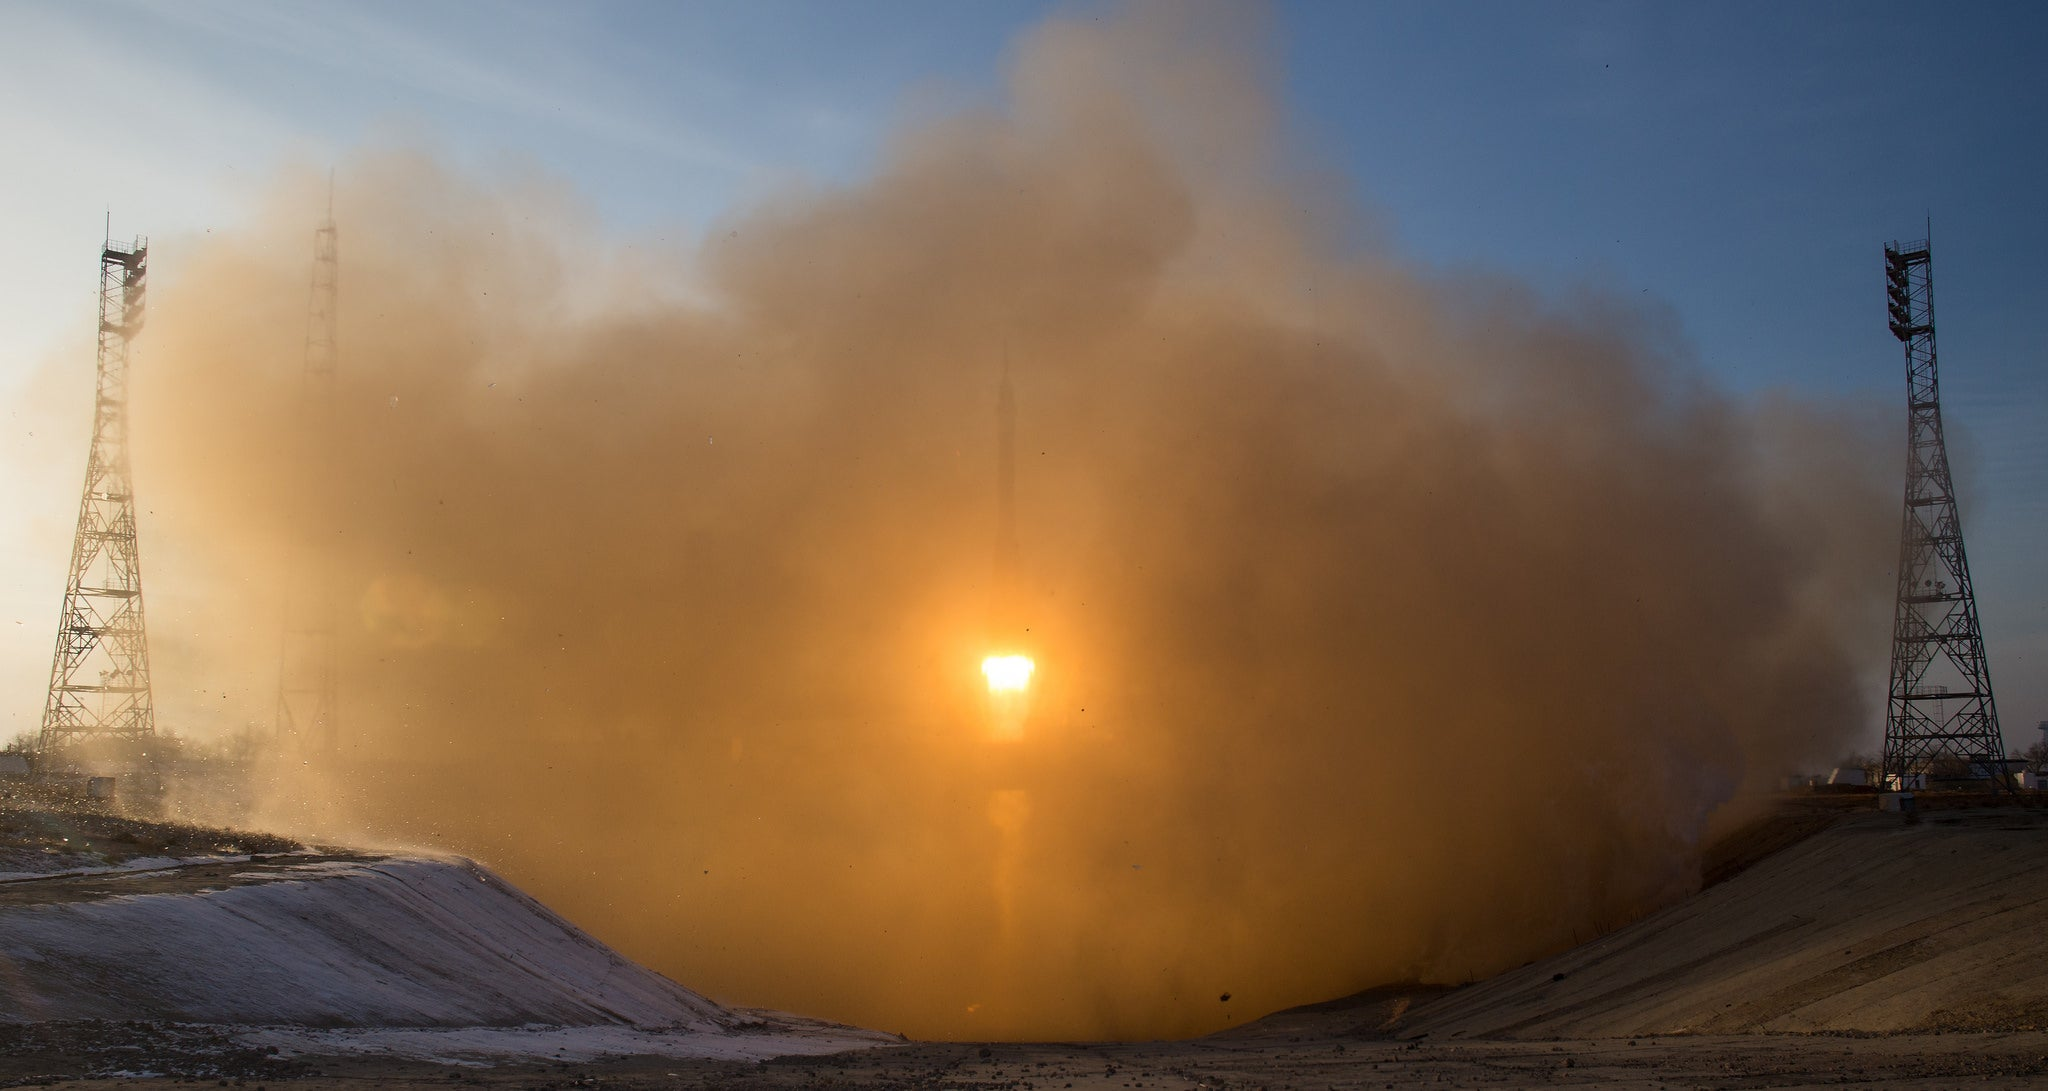 Here's a Rare View of the Soyuz Launch From the Hellish Flame Trench